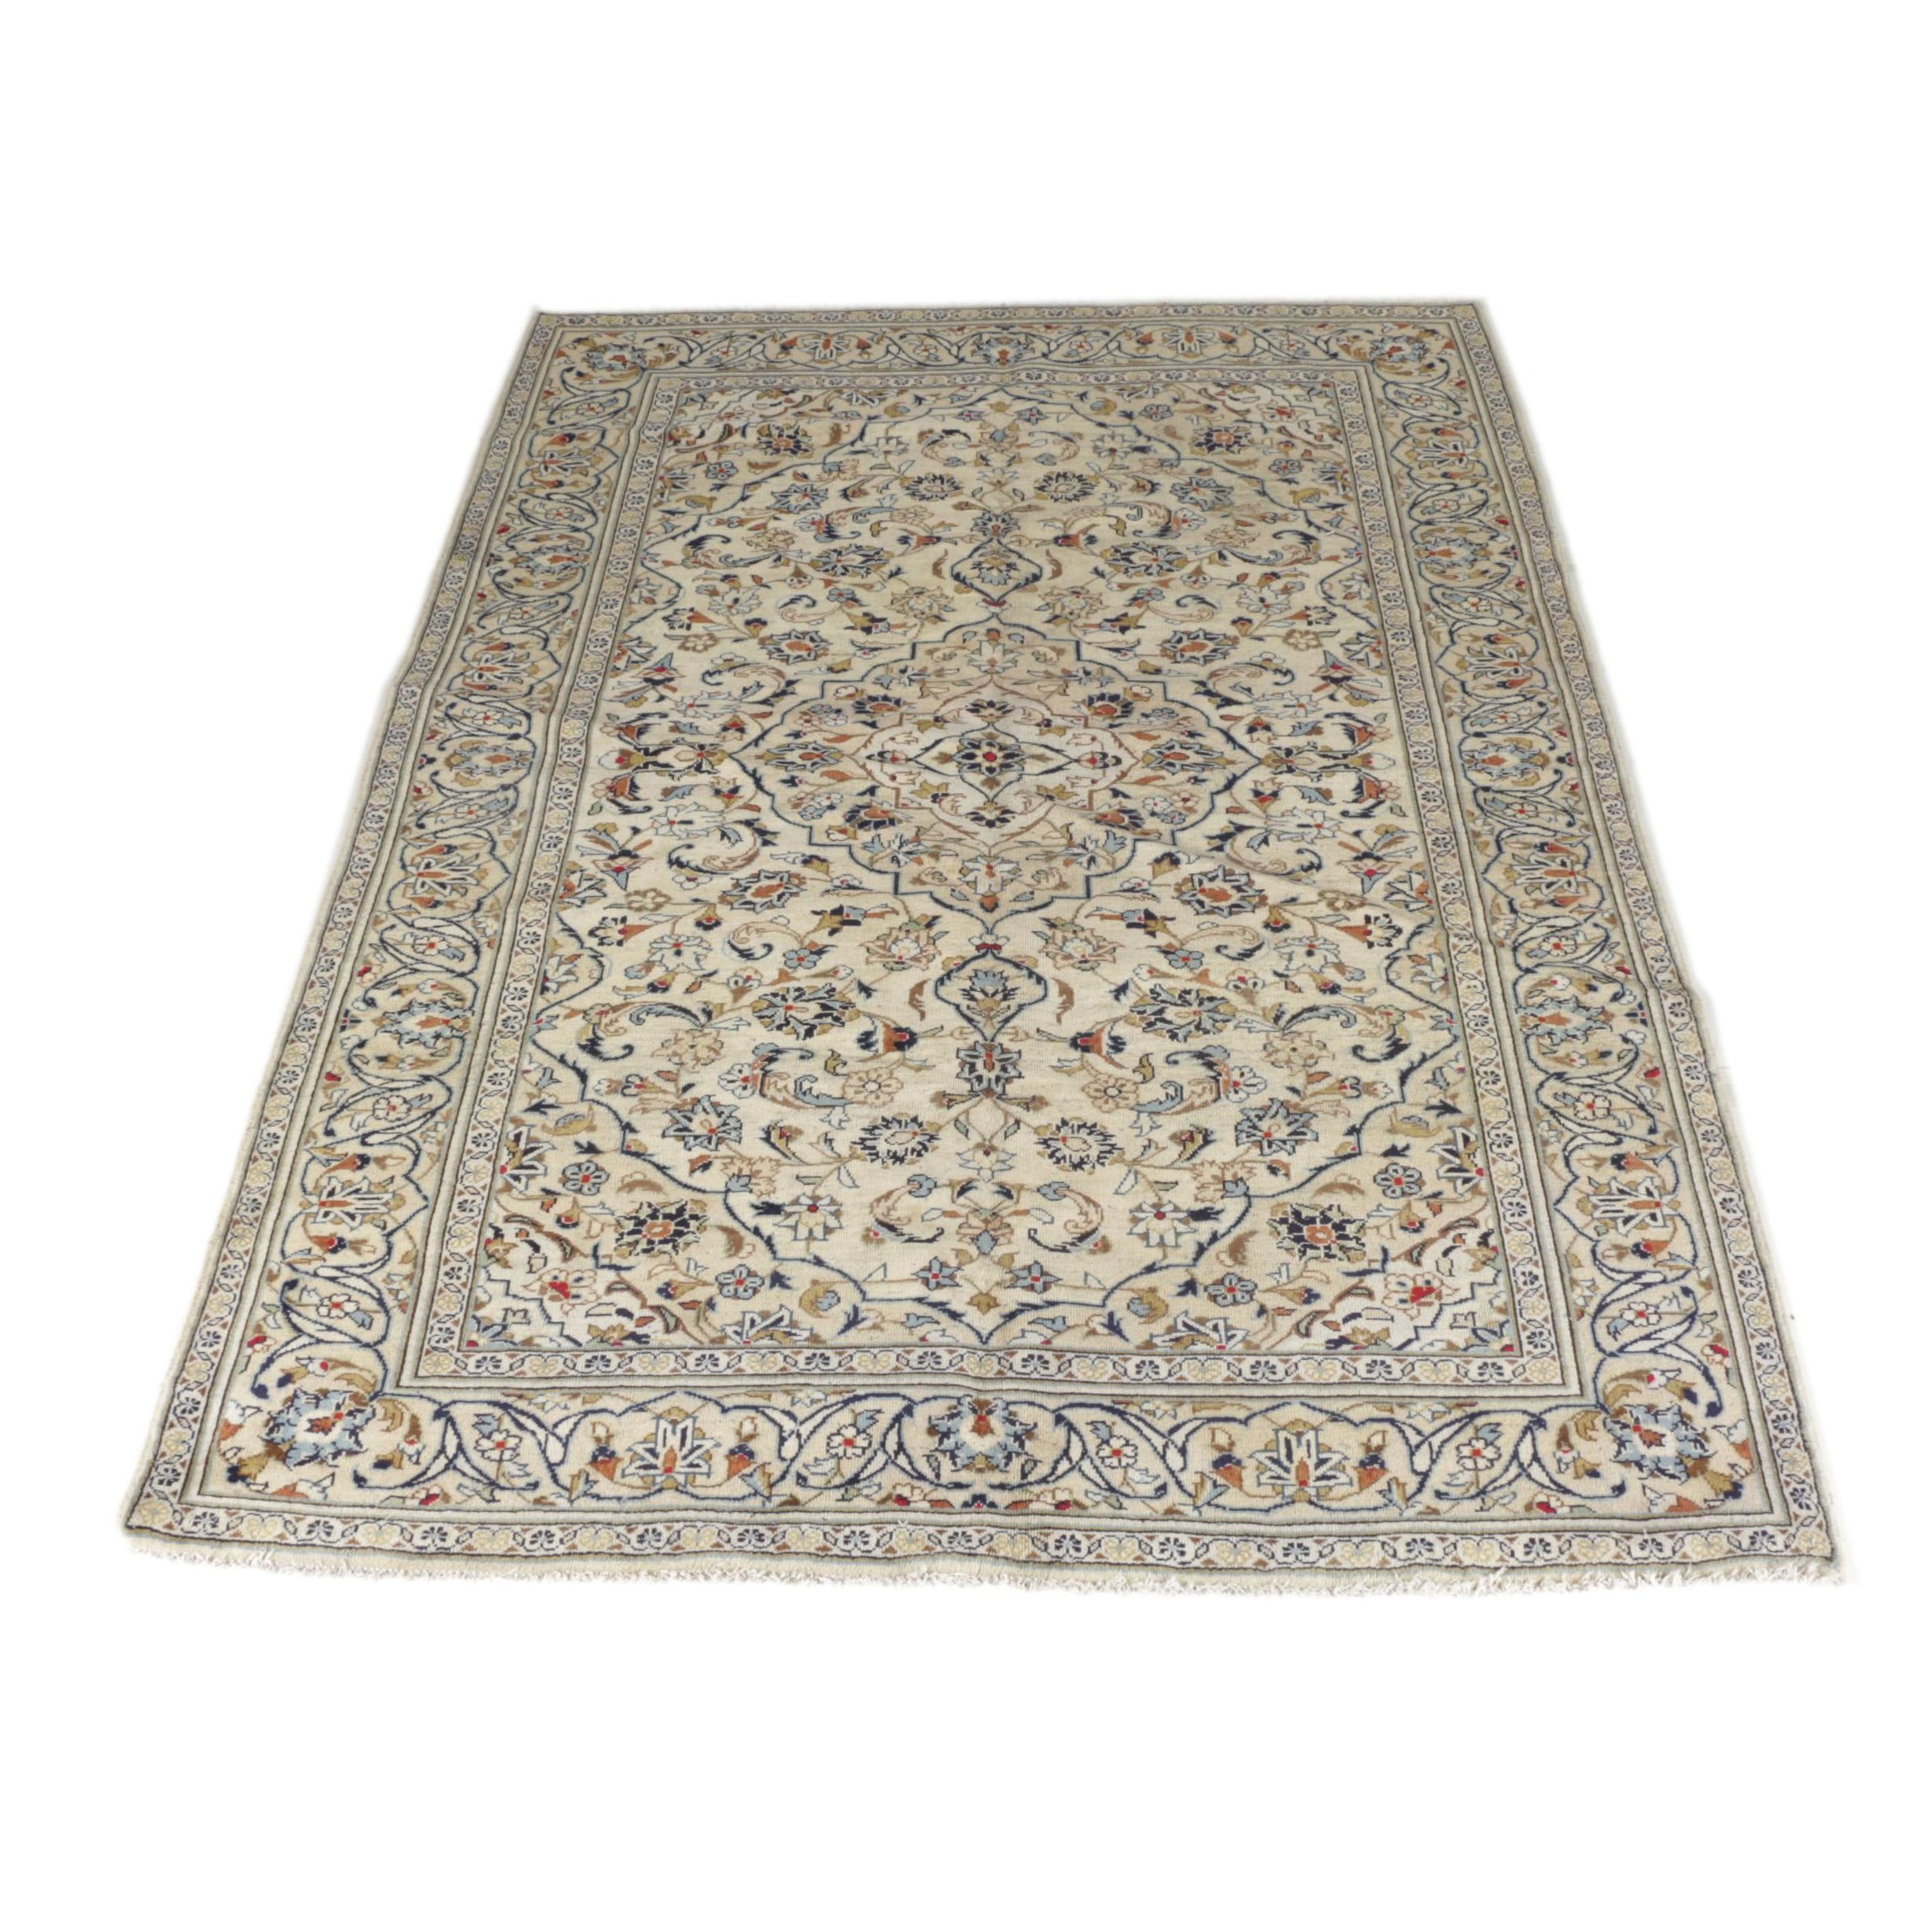 Hand-Knotted Kerman Area Rug